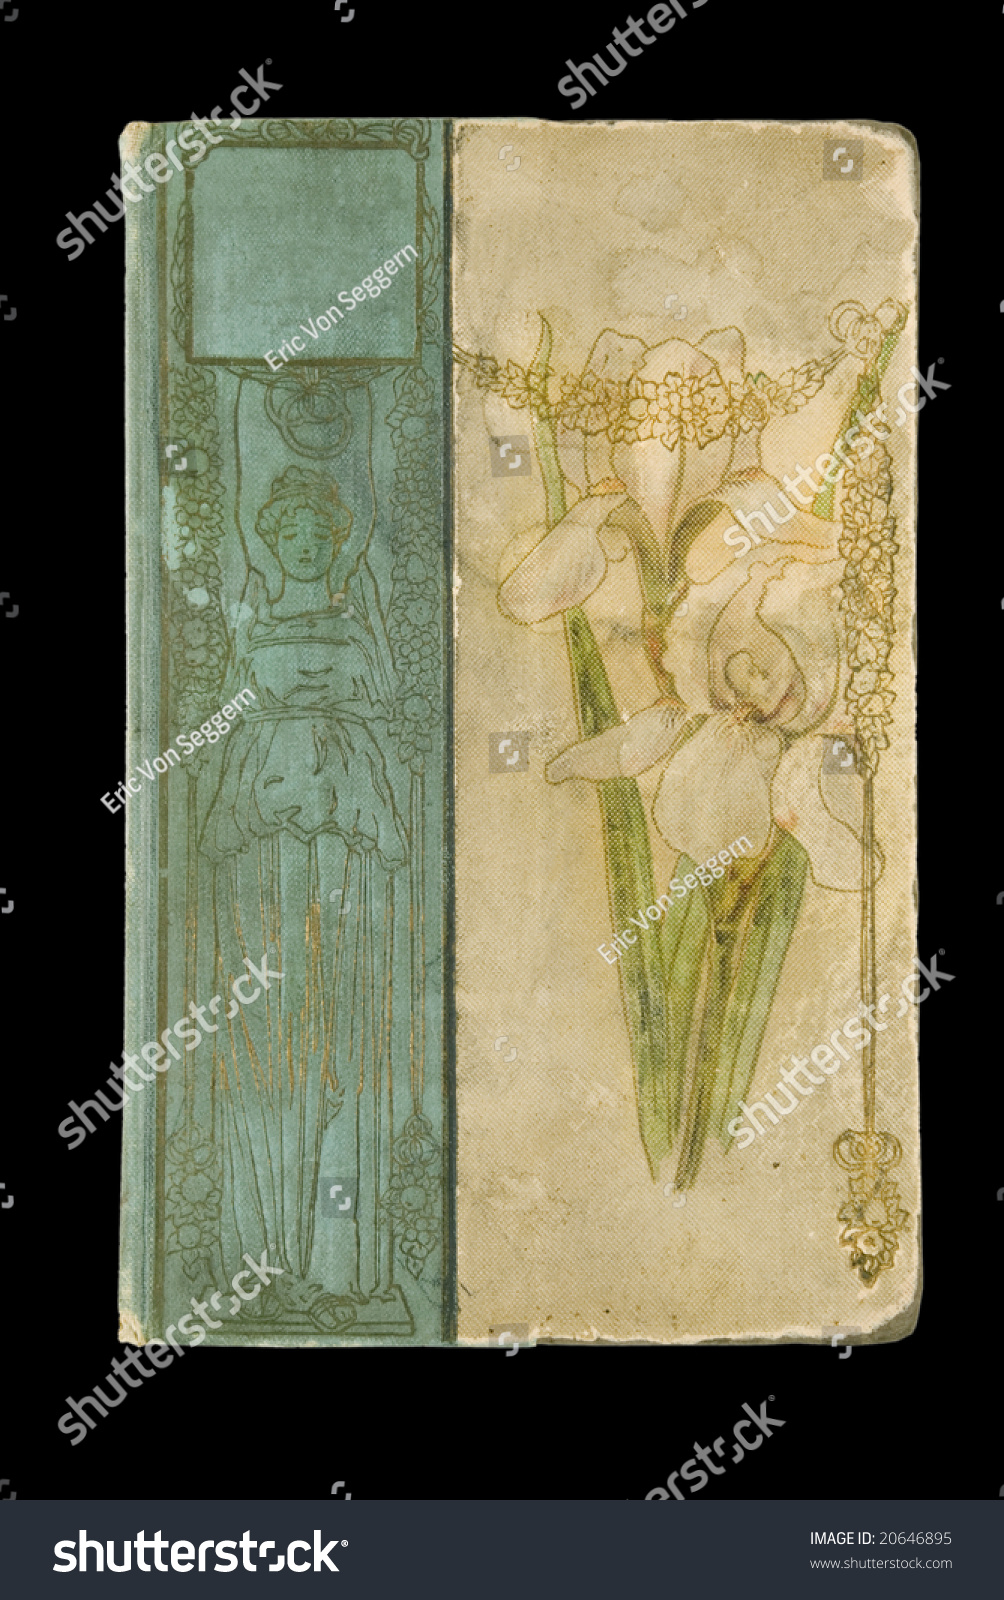 Book Cover Art Stock Images : Very old art nouveau book cover stock photo